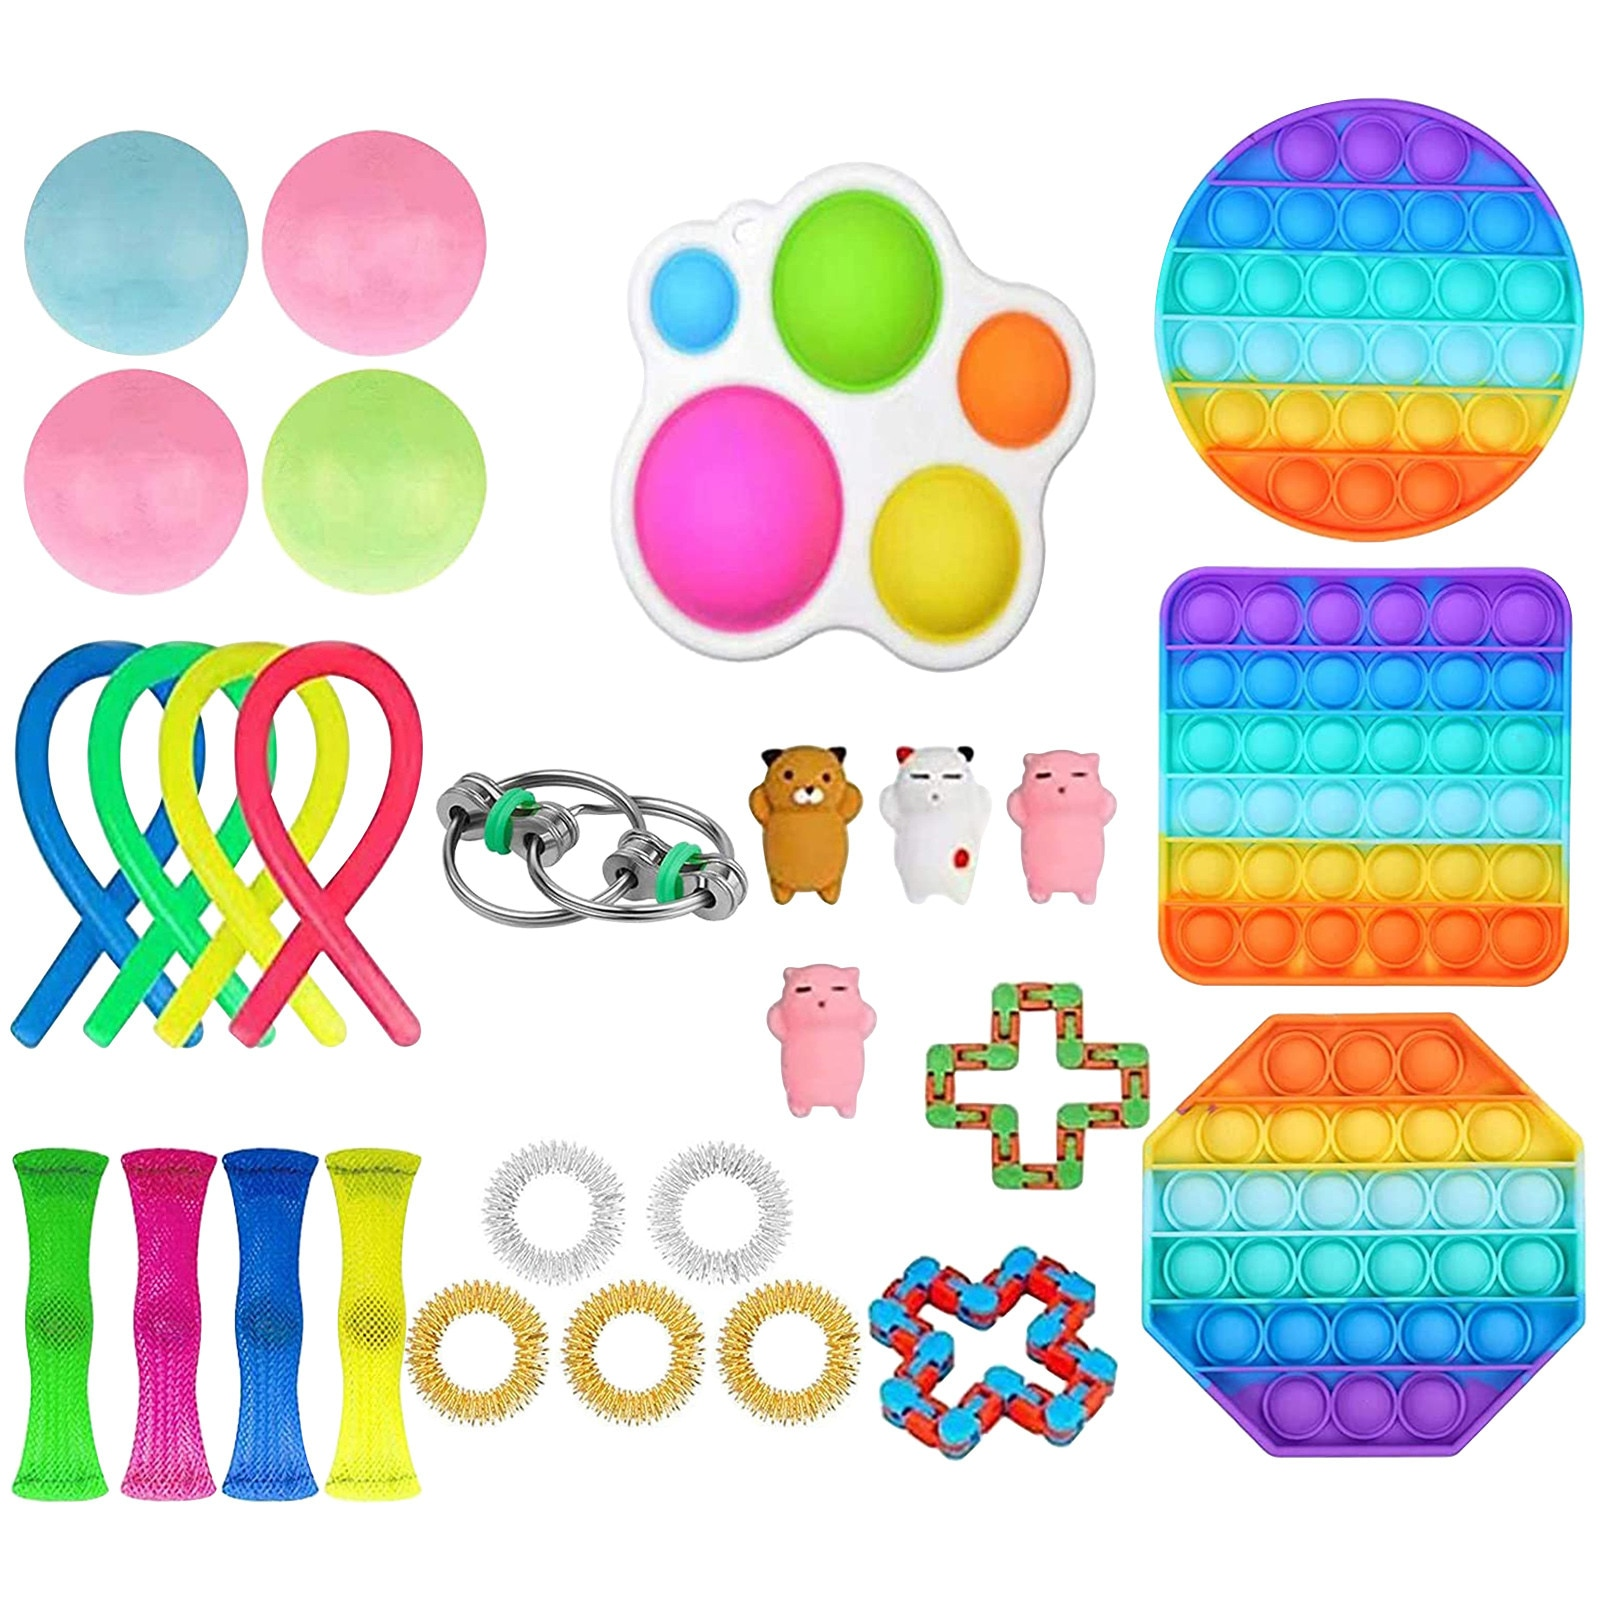 Fidget Toys Pack Gifts Popit Sensory Stress Relief Set Stretchy Strings Kids Adult Squishy Figet Toys Slow Rebound Ball Among us enlarge